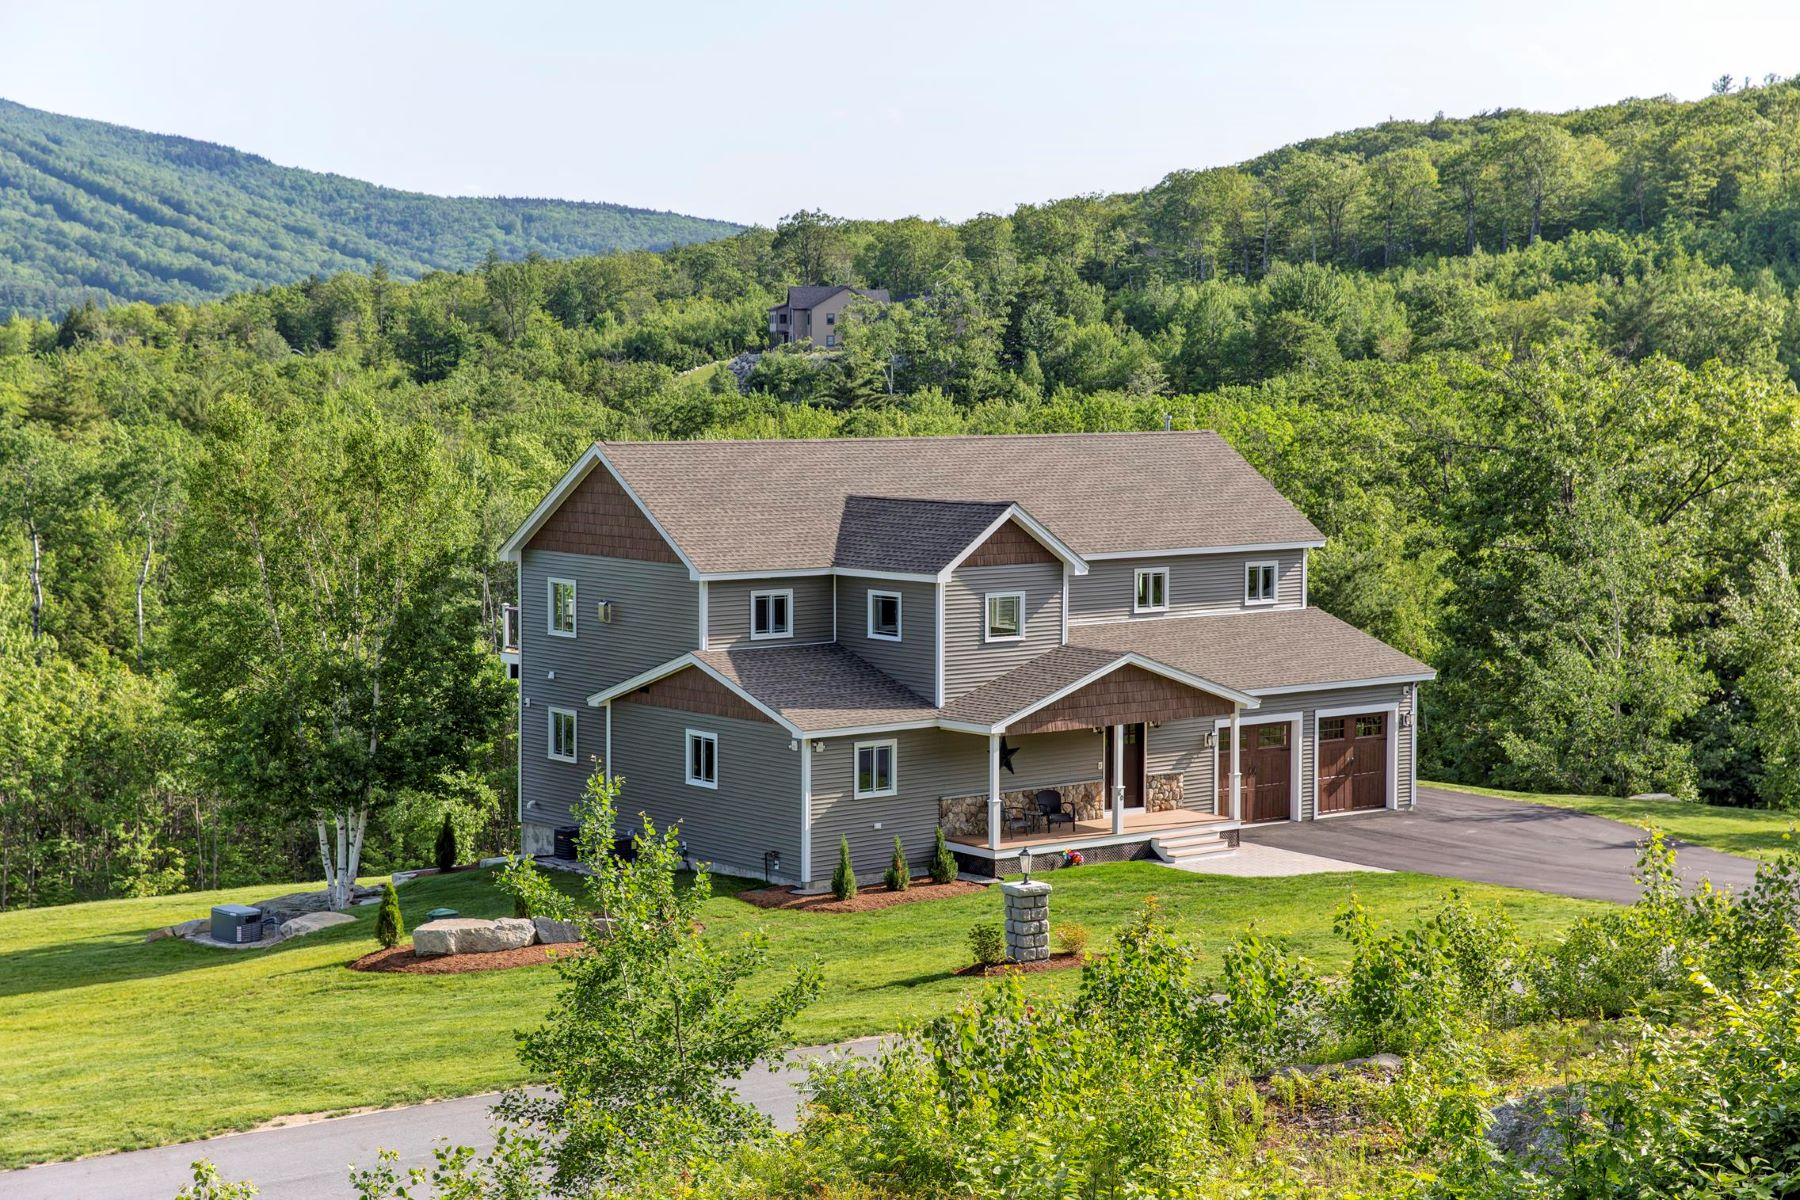 Single Family Home for Sale at 60 Summer, Newbury Newbury, New Hampshire, 03255 United States